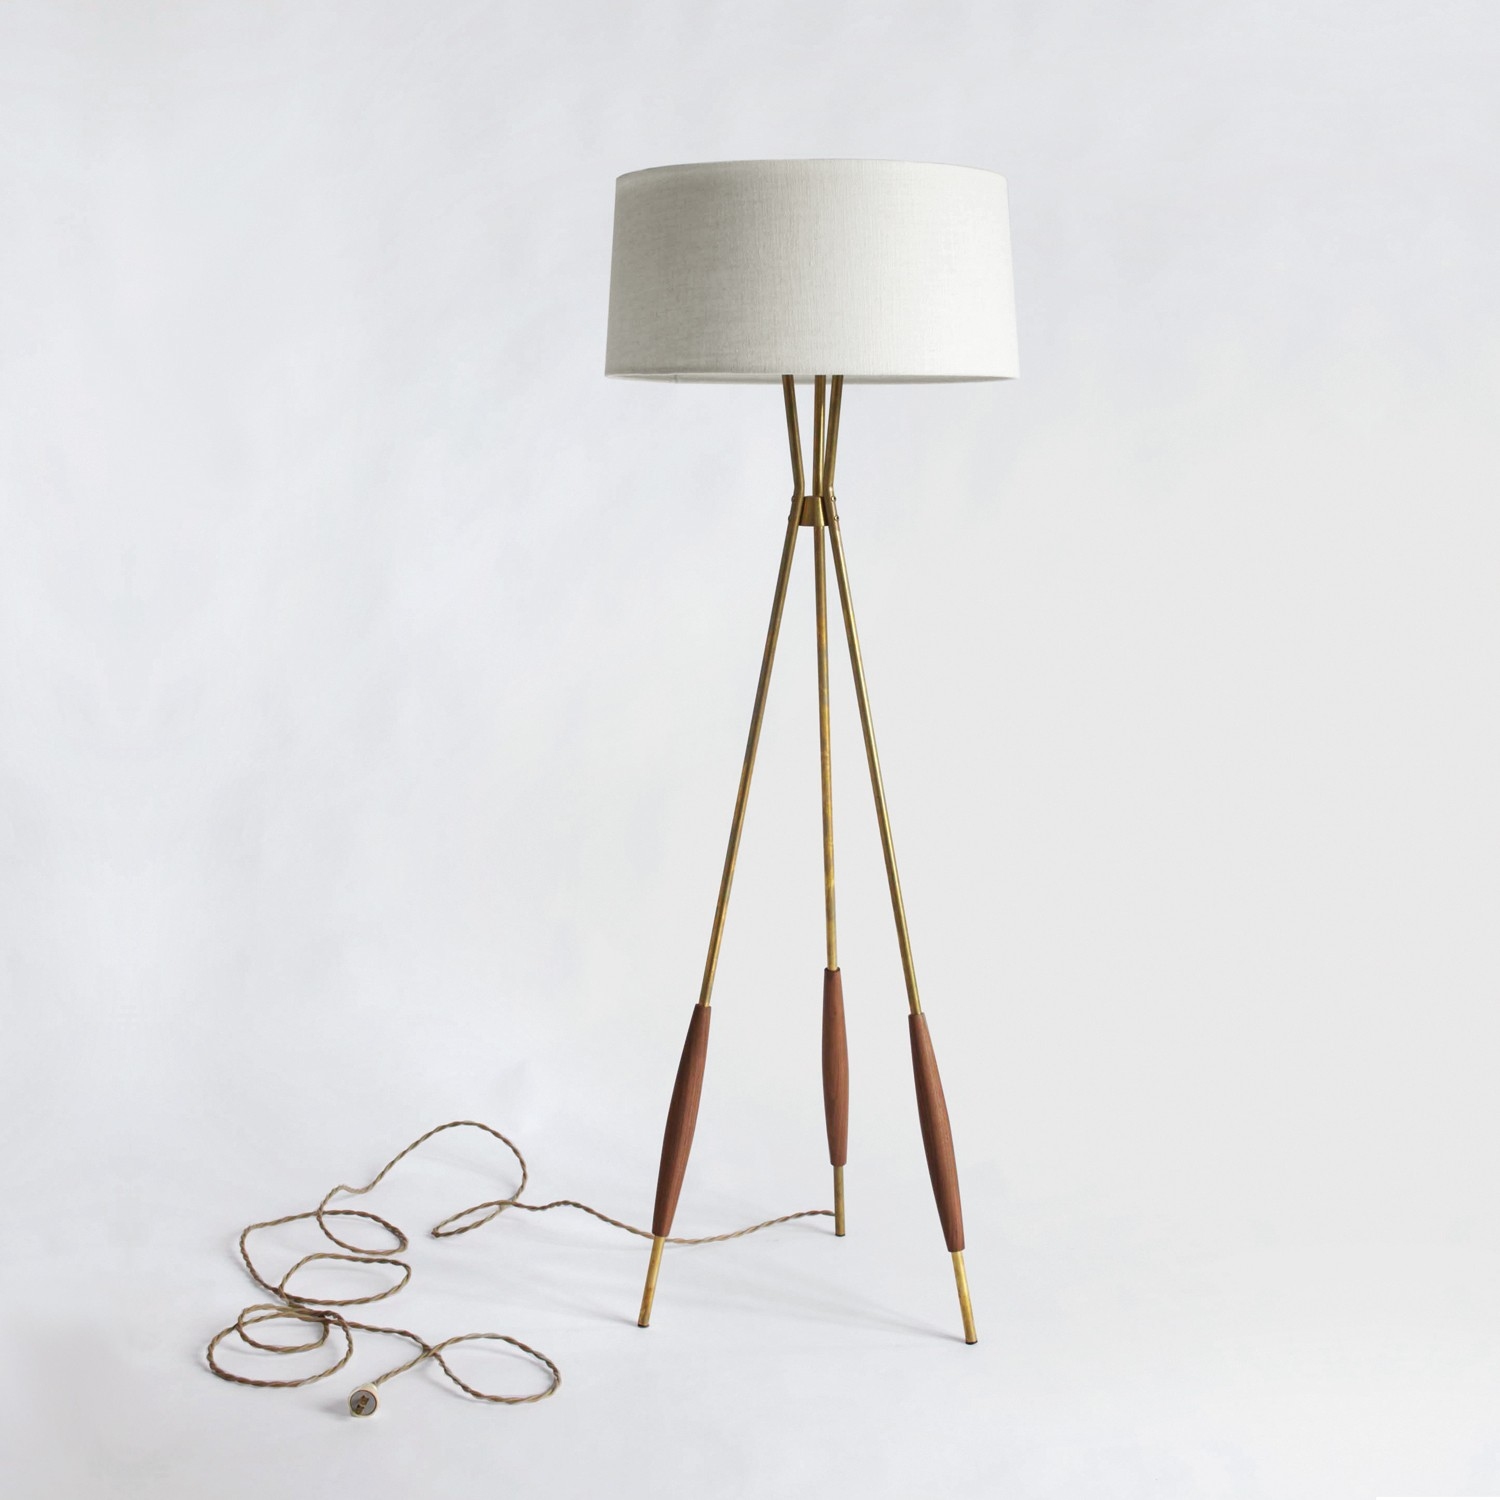 TOP 10 Modern tripod floor lamps for 2018